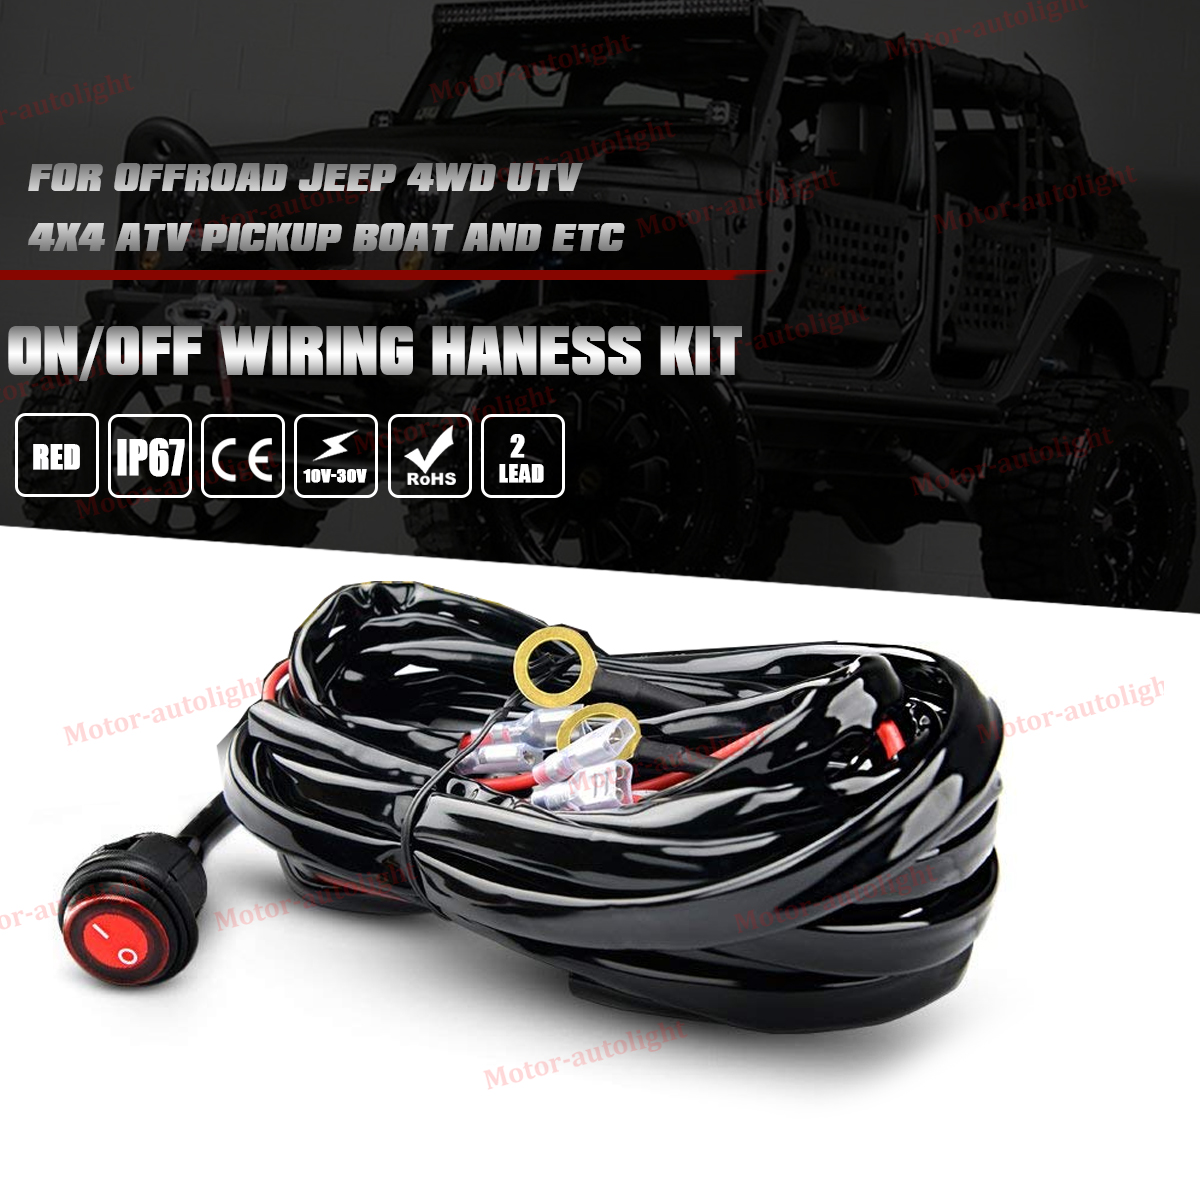 Led Wiring Loom Harness Kit One To Two Universal Driving Light Bar Utv Off Road 12v On Waterproof Switch 2 Lead